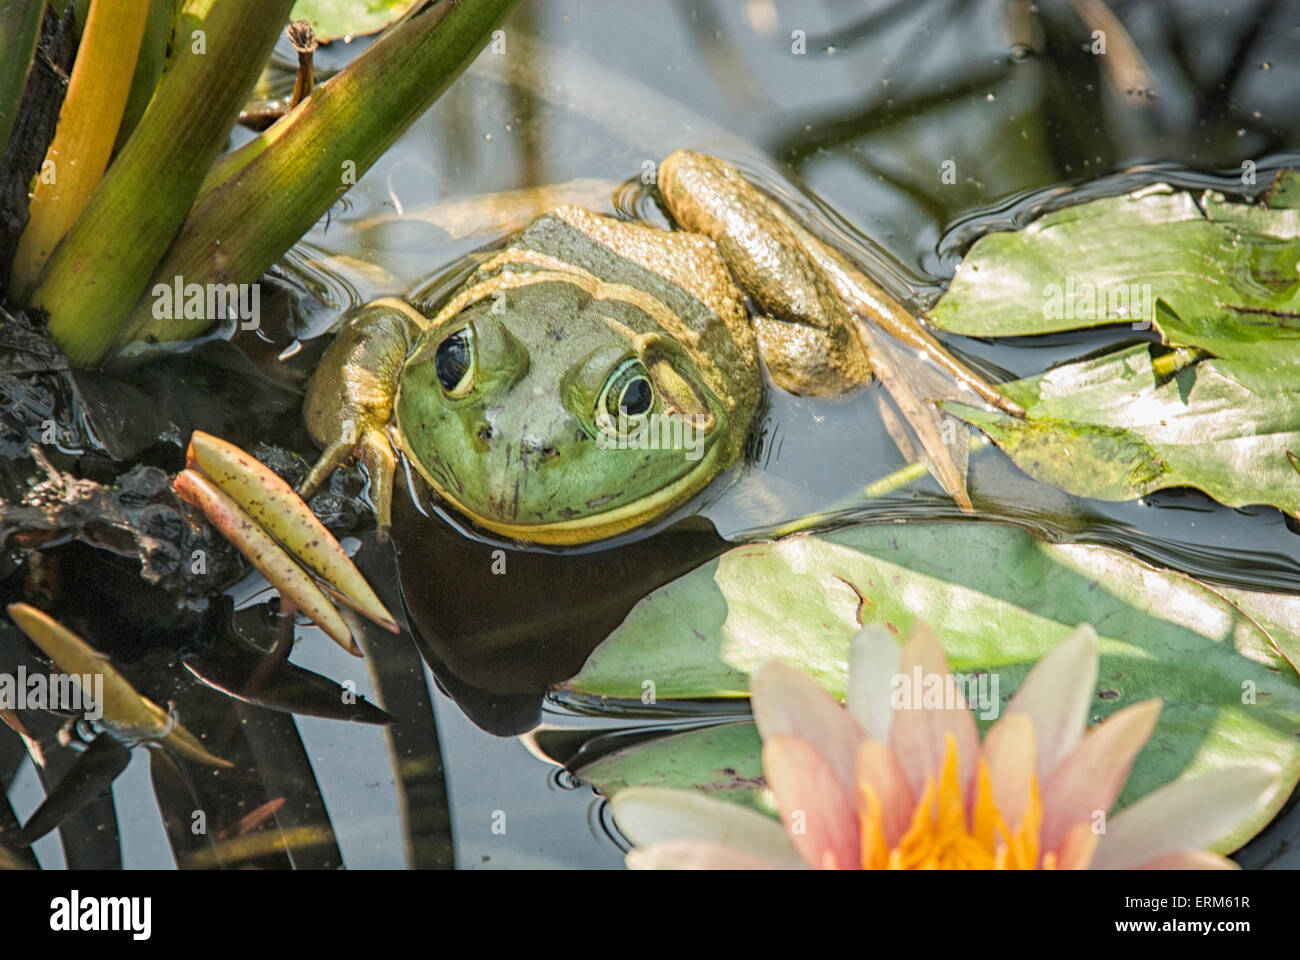 American Bullfrog, Lithobates catesbeianus or Rana catesbeiana, in a lily pond in New York State, USA - Stock Image